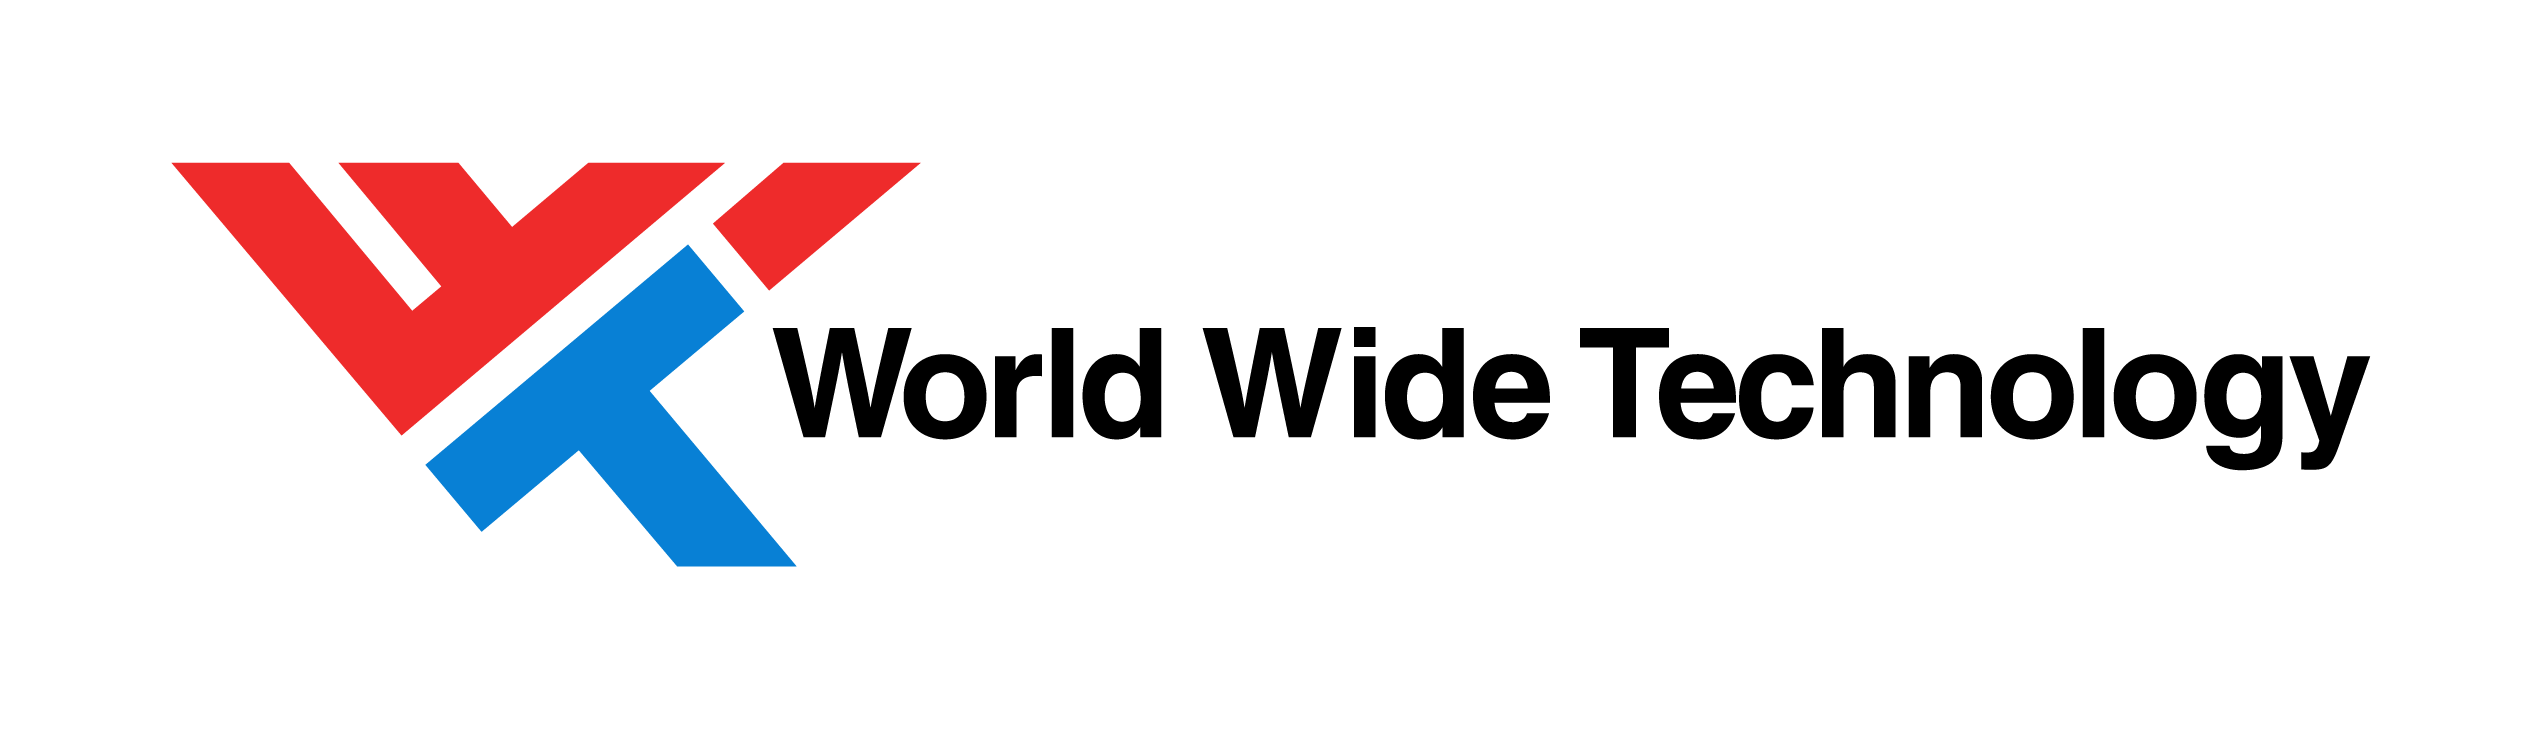 Transparent technology. Worldwide logo png images